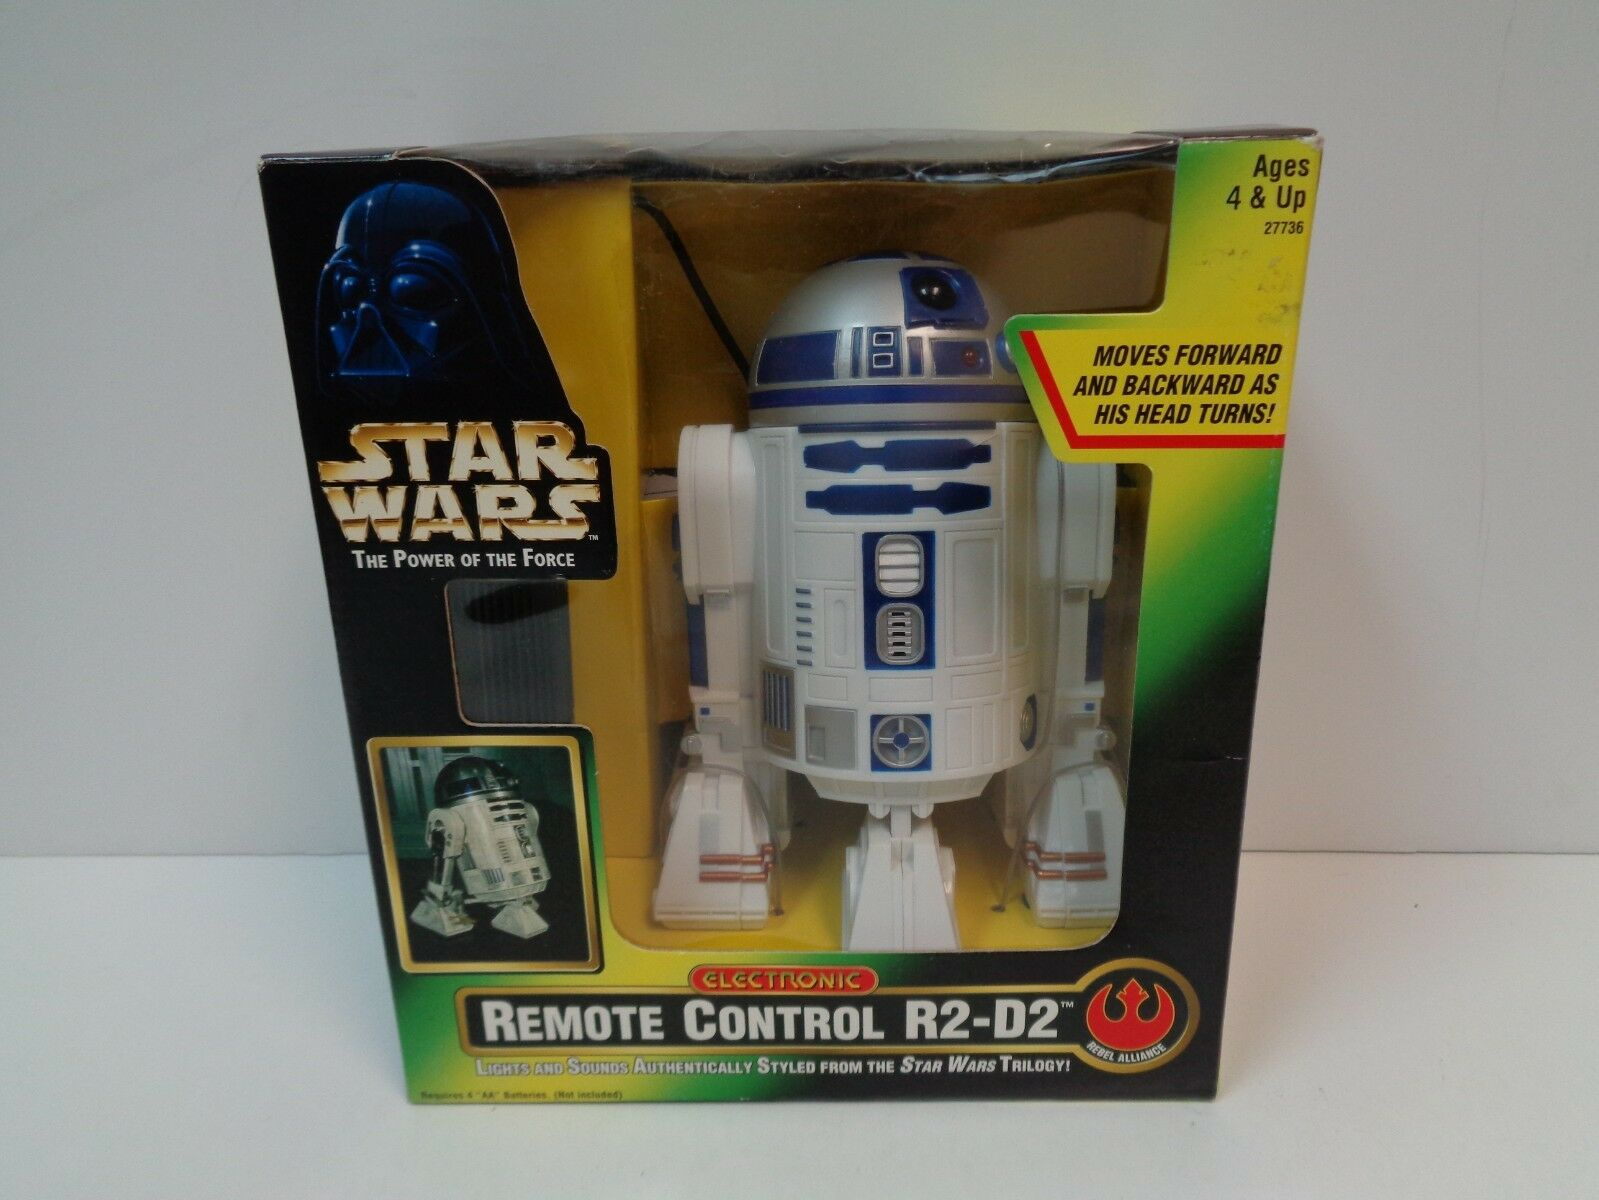 Star Wars ELECTRONIC REMOTE CONTROL R2-D2 The Power of the Force MOC